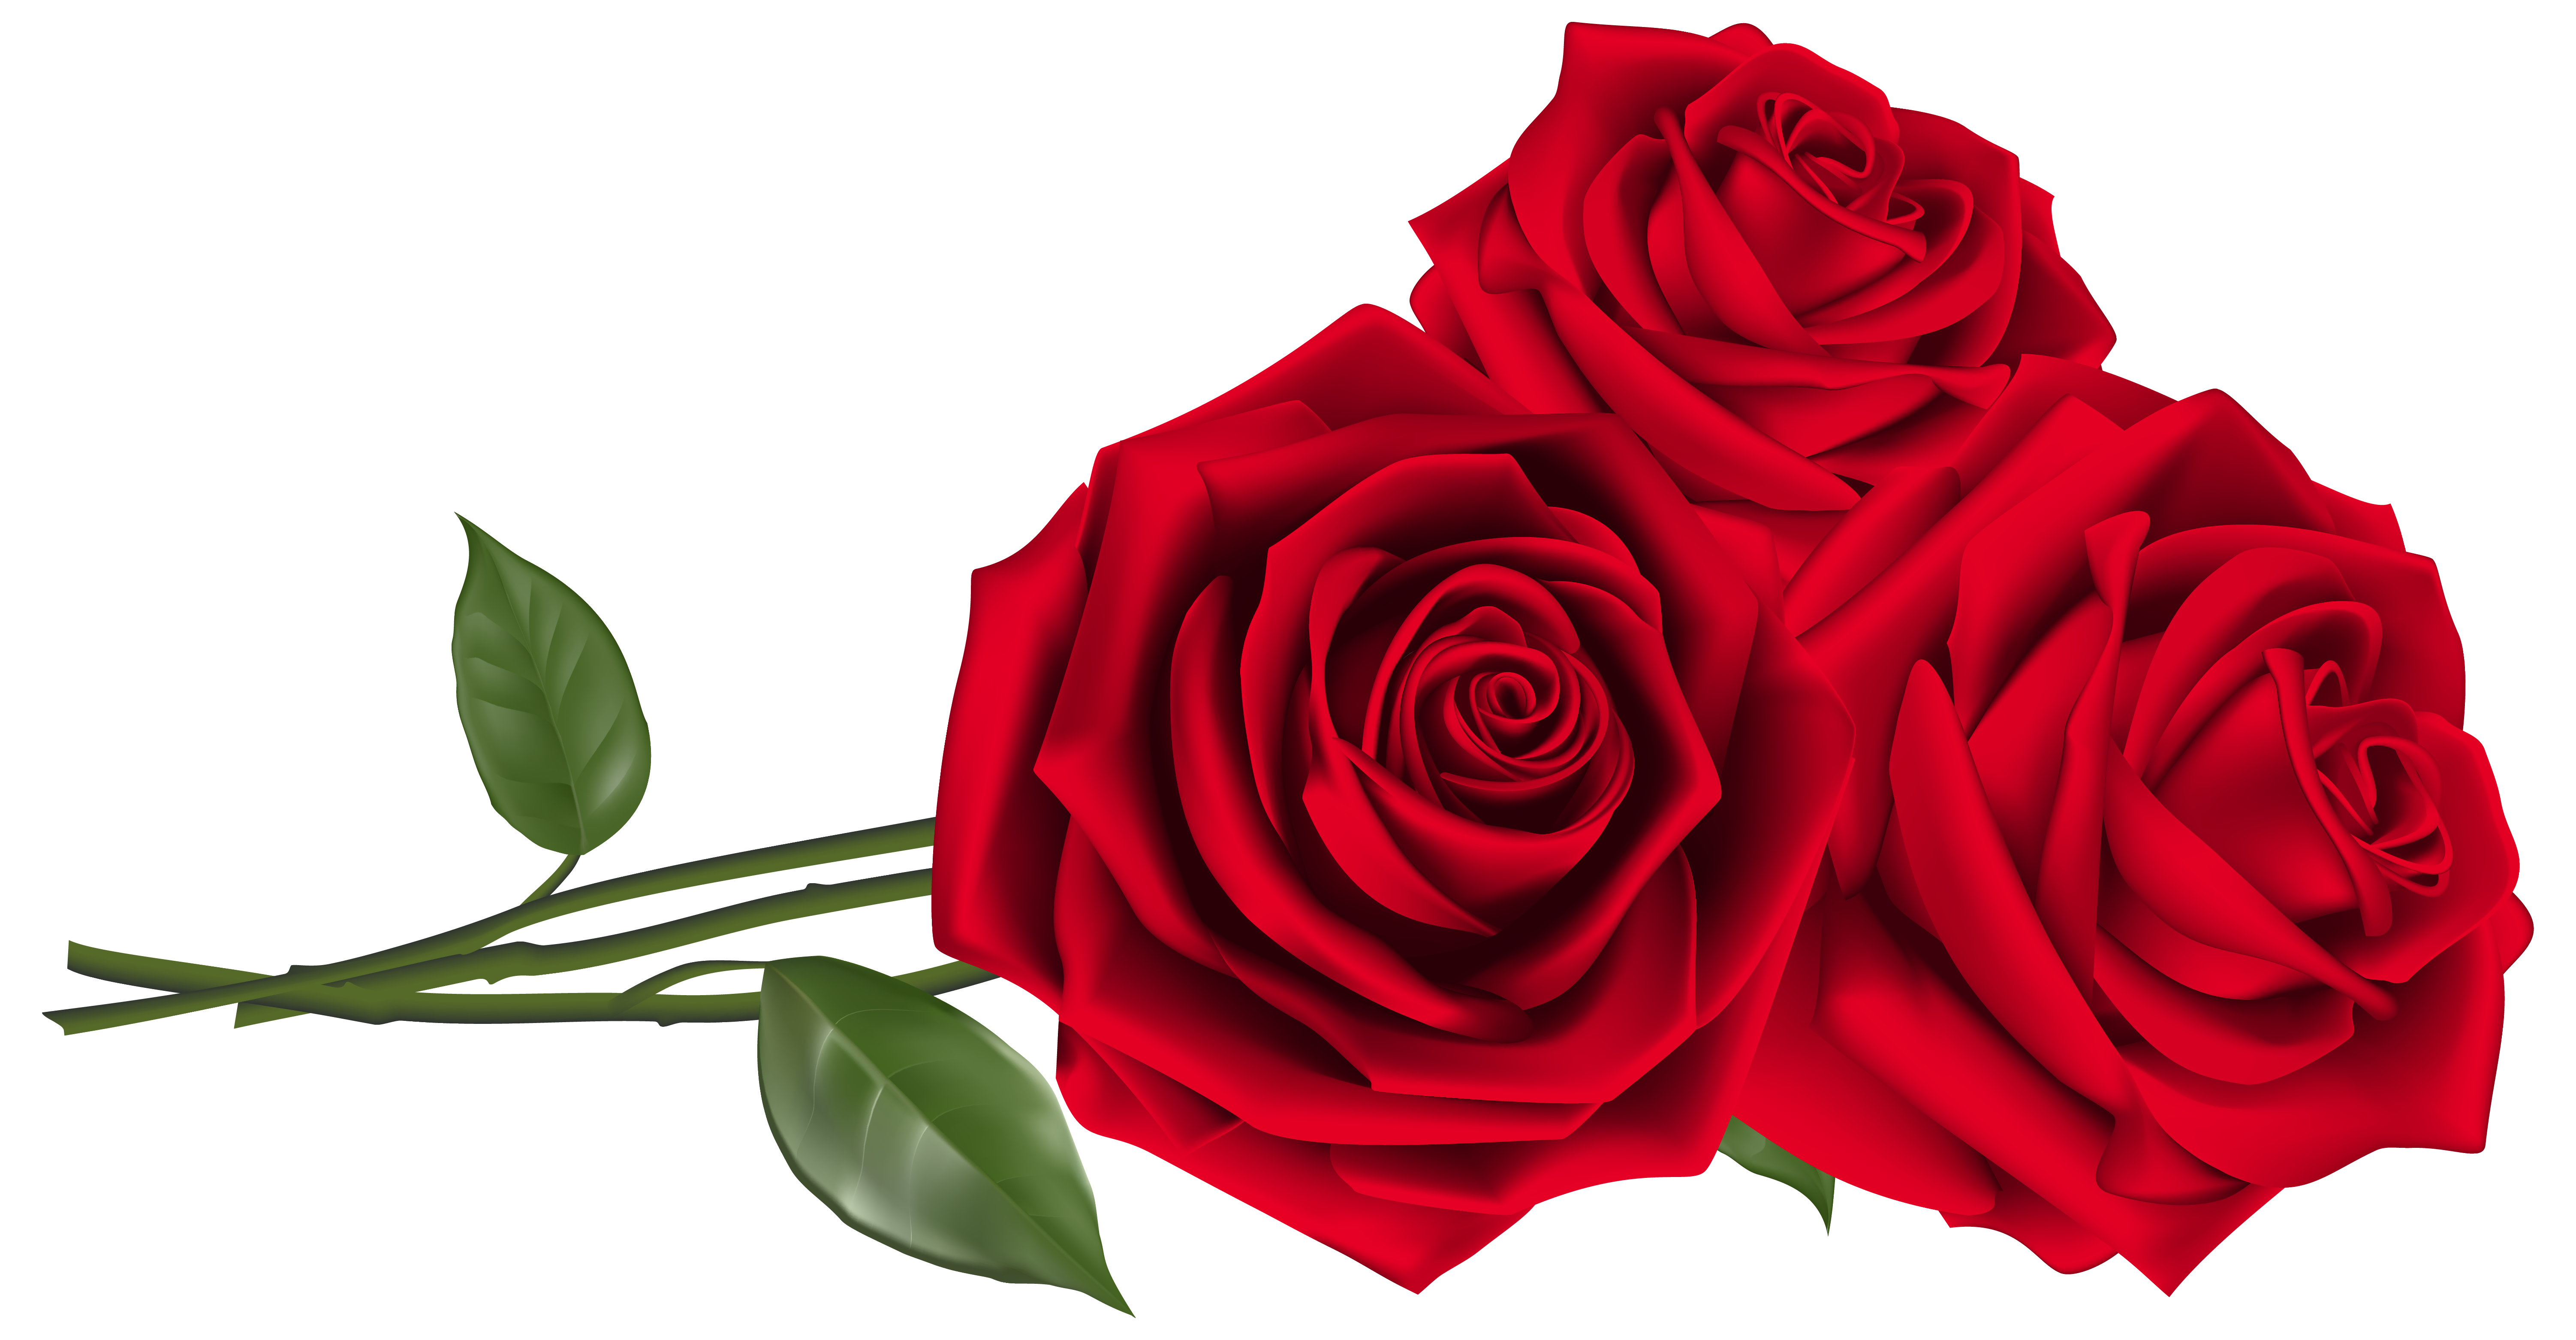 Three Red Roses PNG Clipart Image Rosas, Rosas rojas, Flores